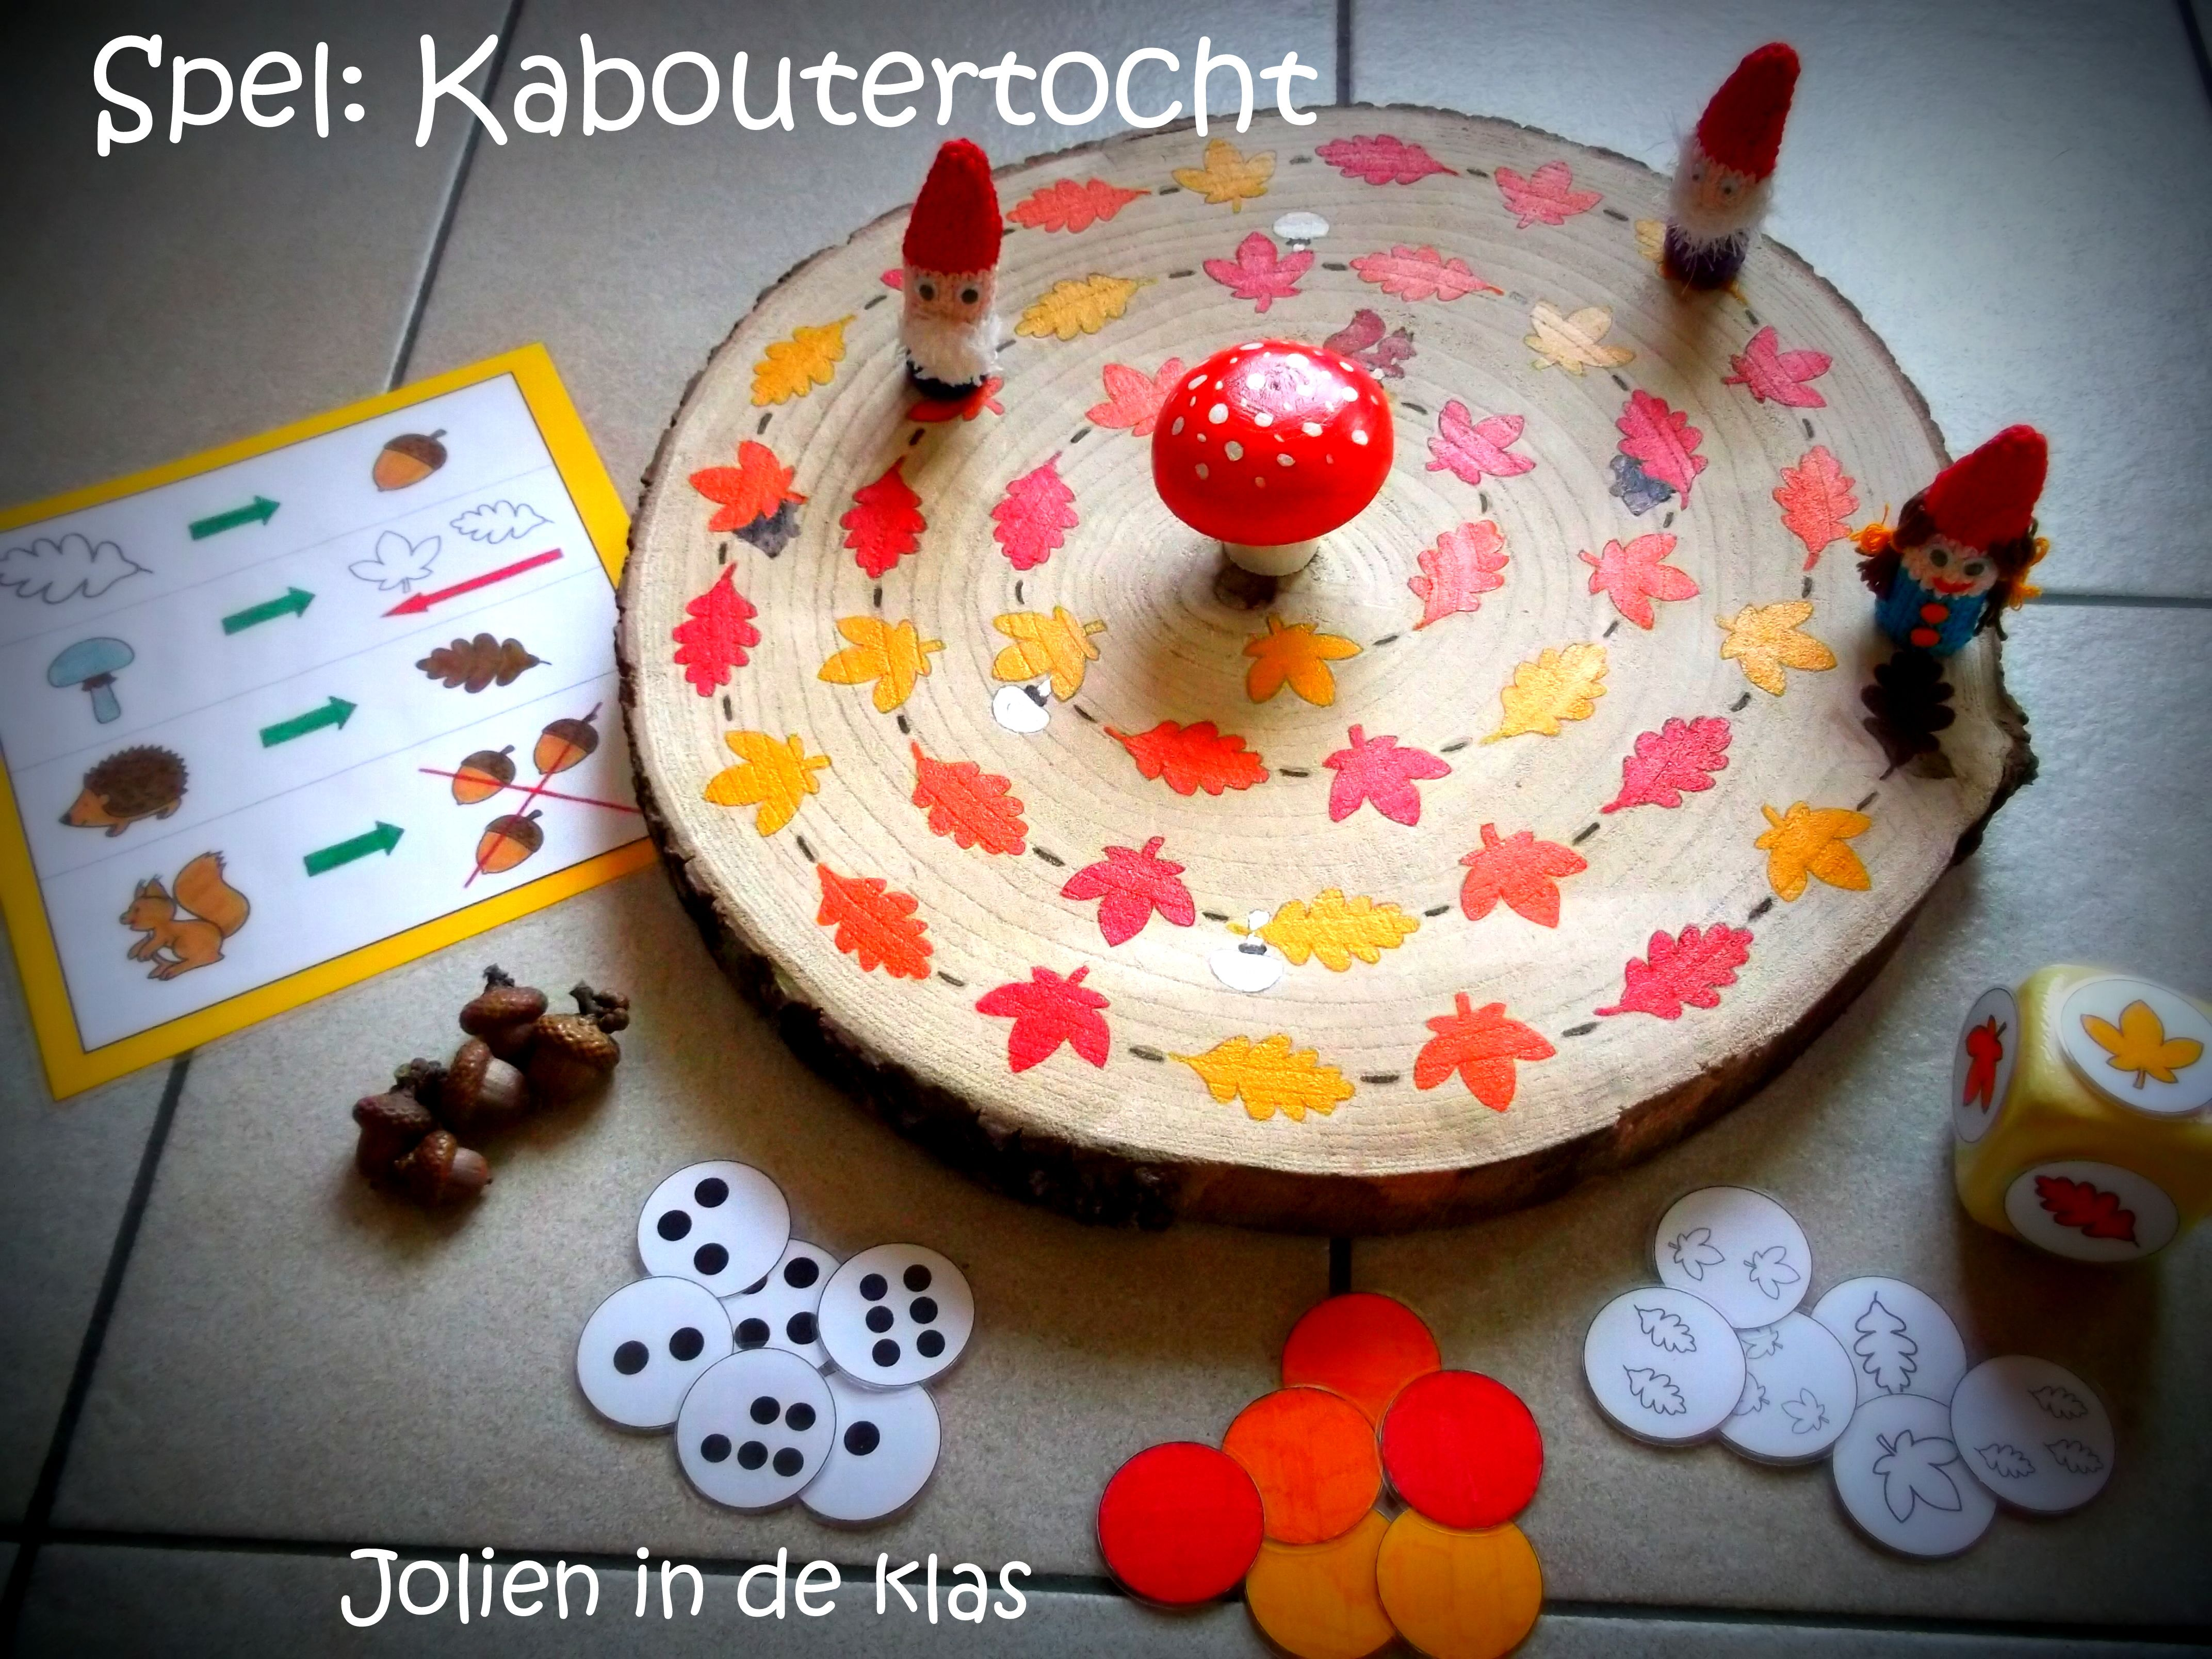 1000+ images about kabouters on Pinterest